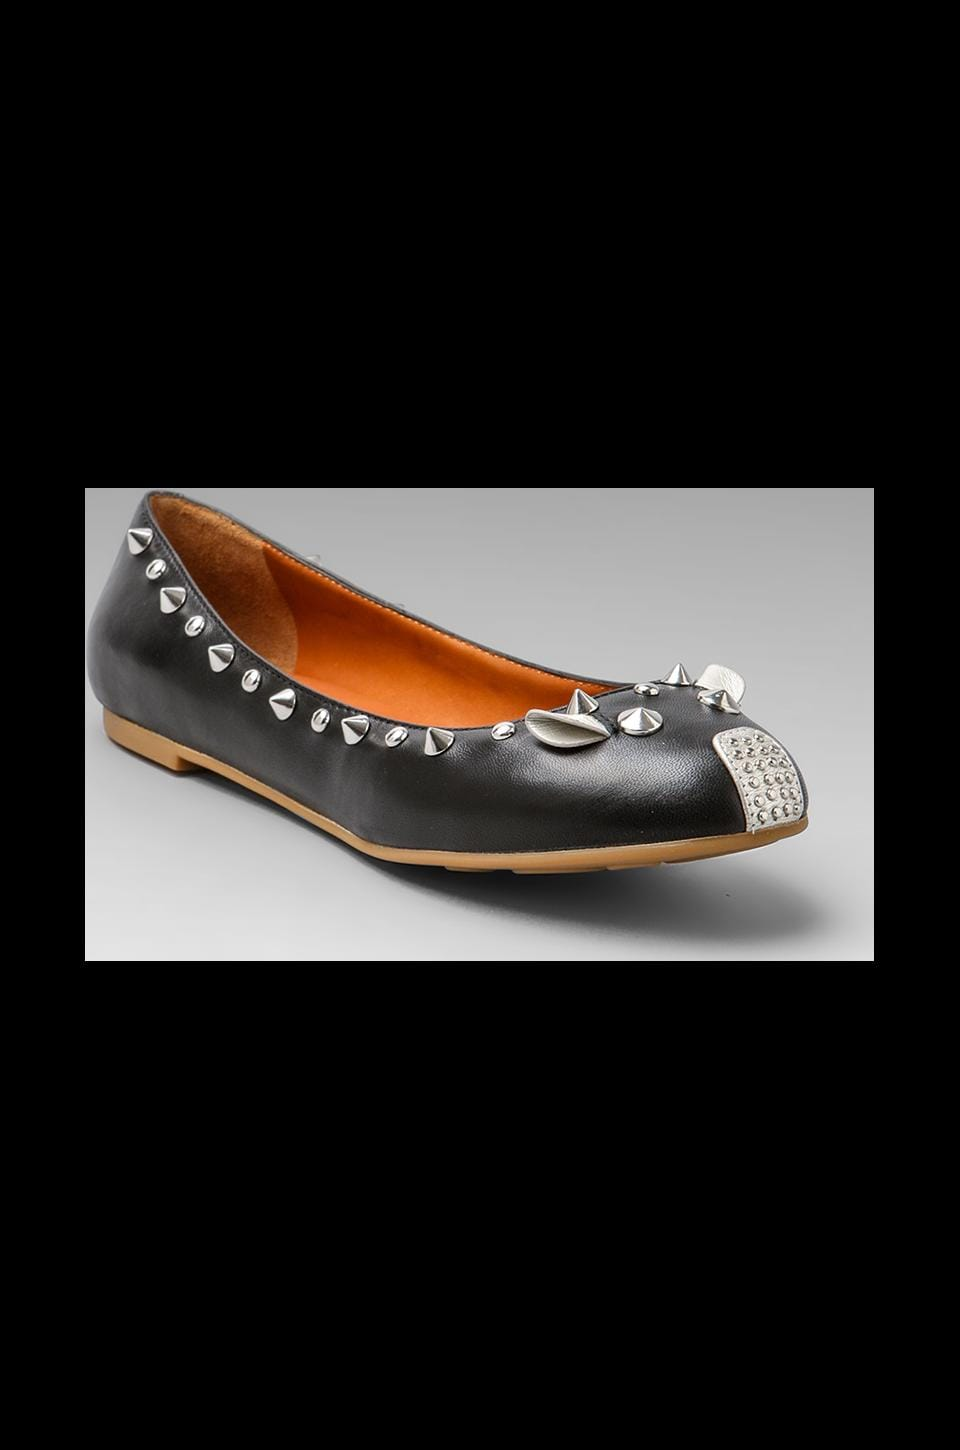 Marc by Marc Jacobs Metallic Mouse Ballerina Flat in Black and Silver